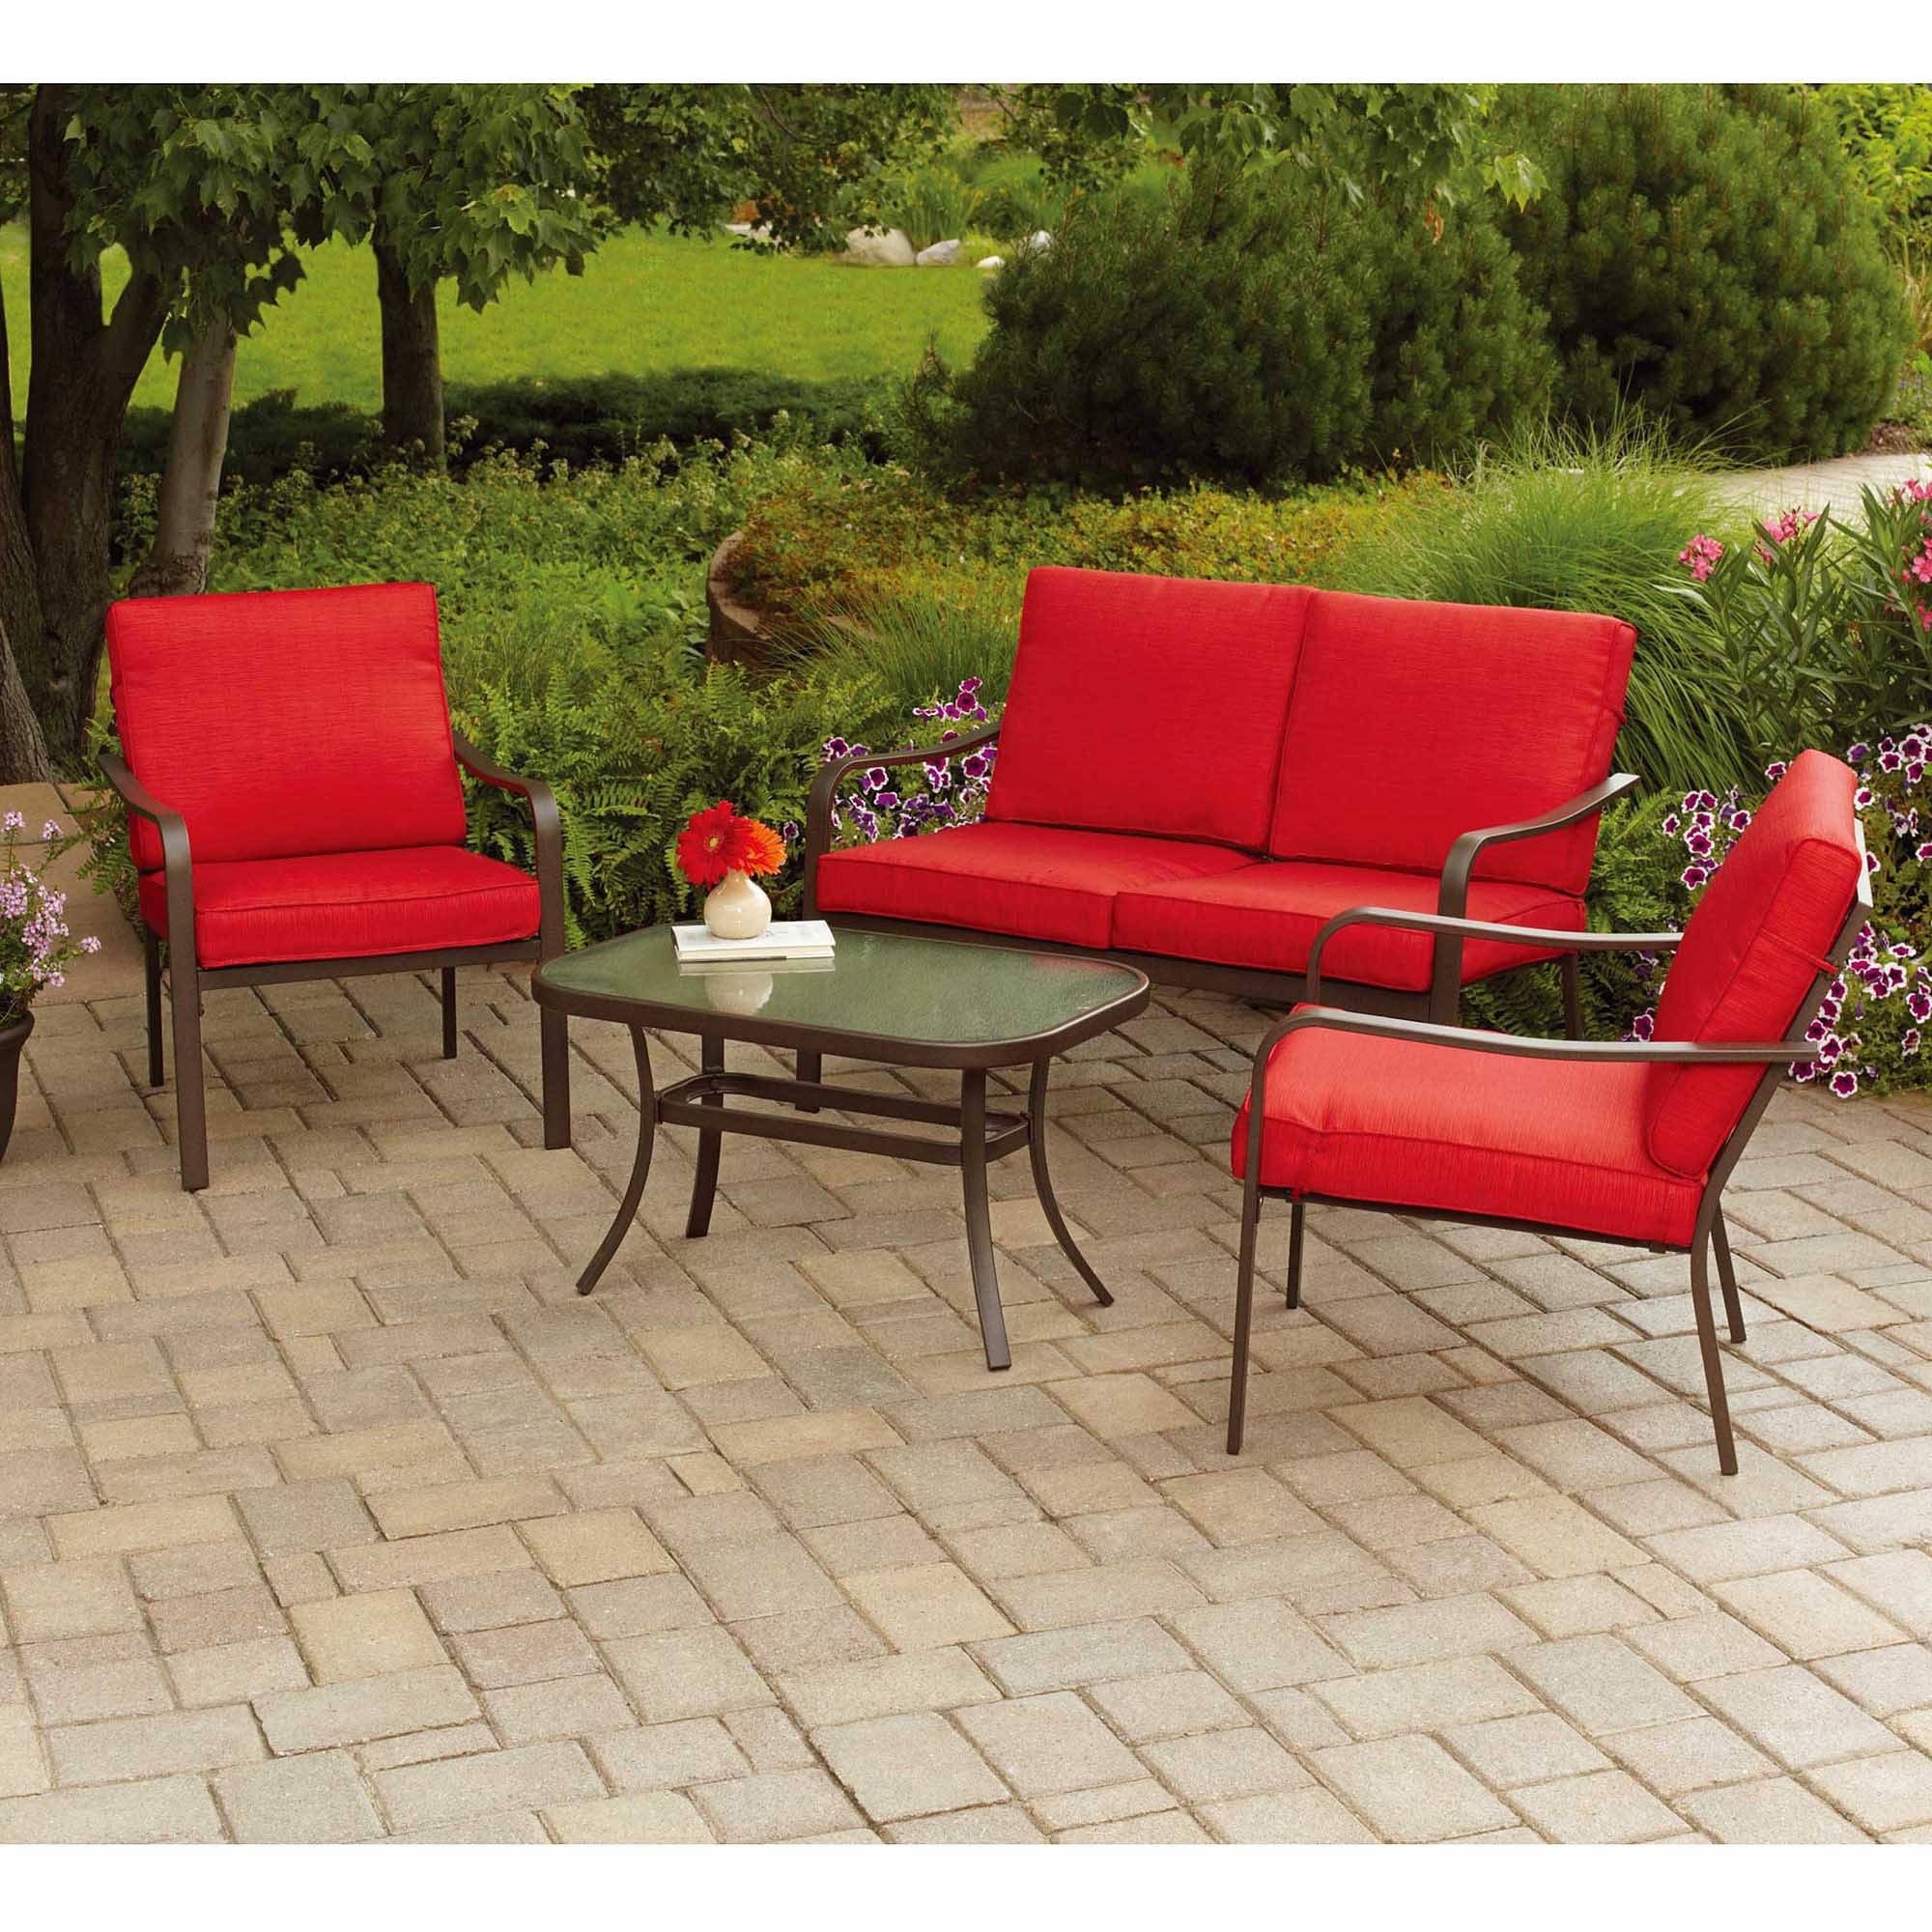 Best And Newest Mainstays Stanton Cushioned 4 Piece Patio Conversation Set, Seats 4 With Regard To Sears Patio Furniture Conversation Sets (View 3 of 15)